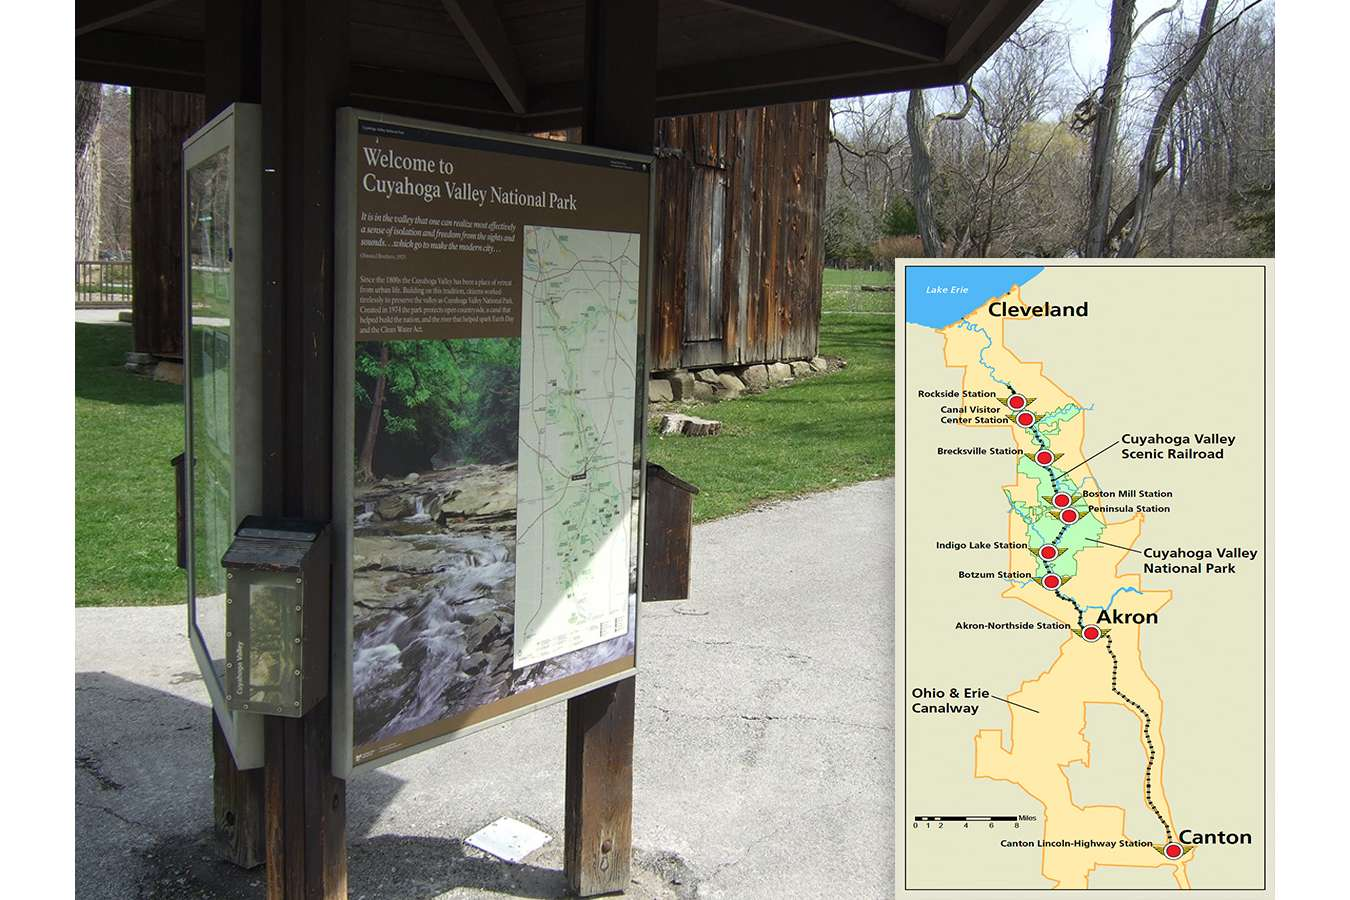 CUVANPS1 : Waysides for the Cuyahoga Valley National Park include new logos, maps and partnership branding